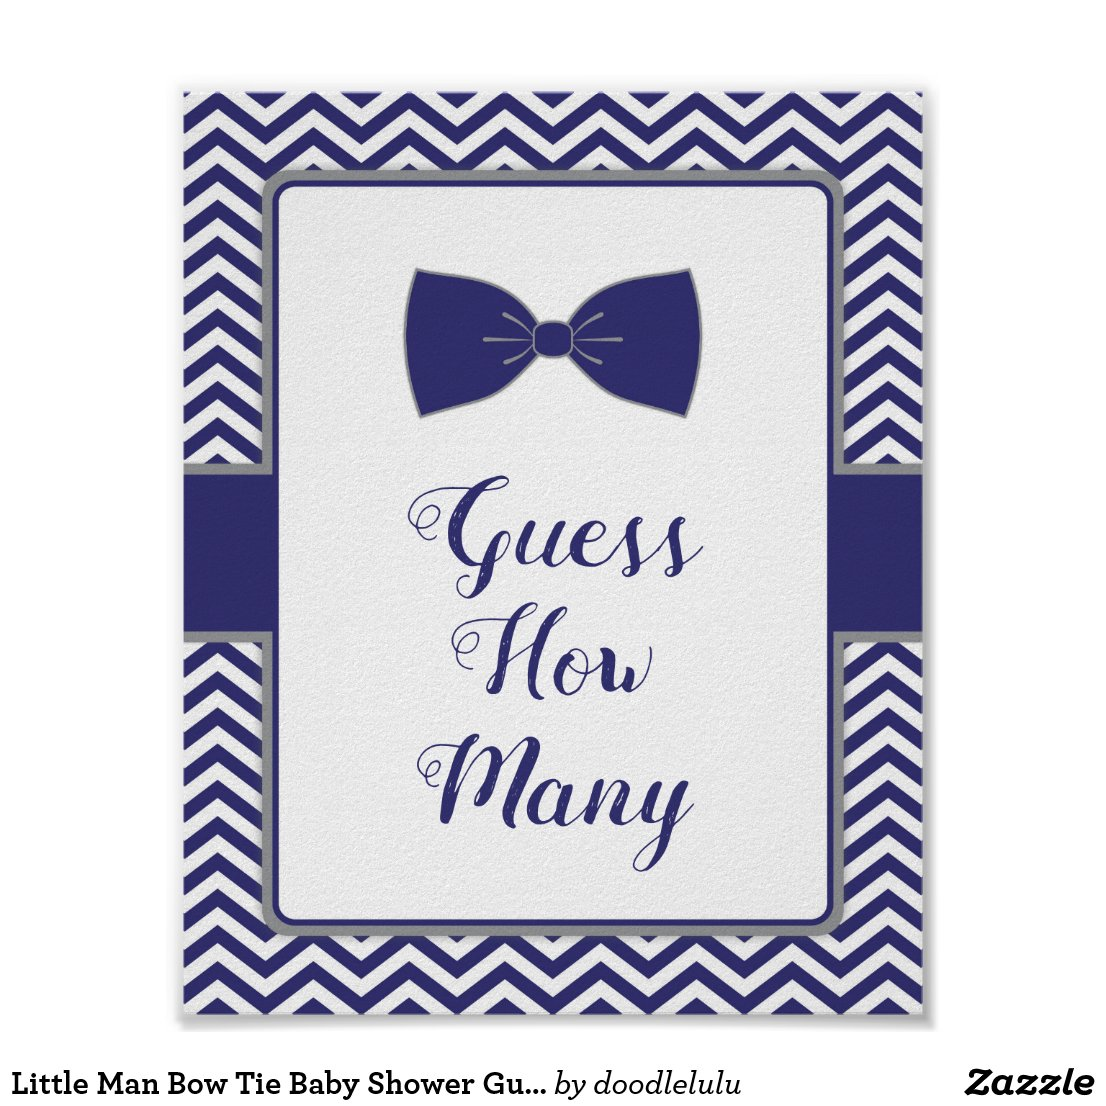 Little Man Bow Tie Baby Shower Guess How Many Poster